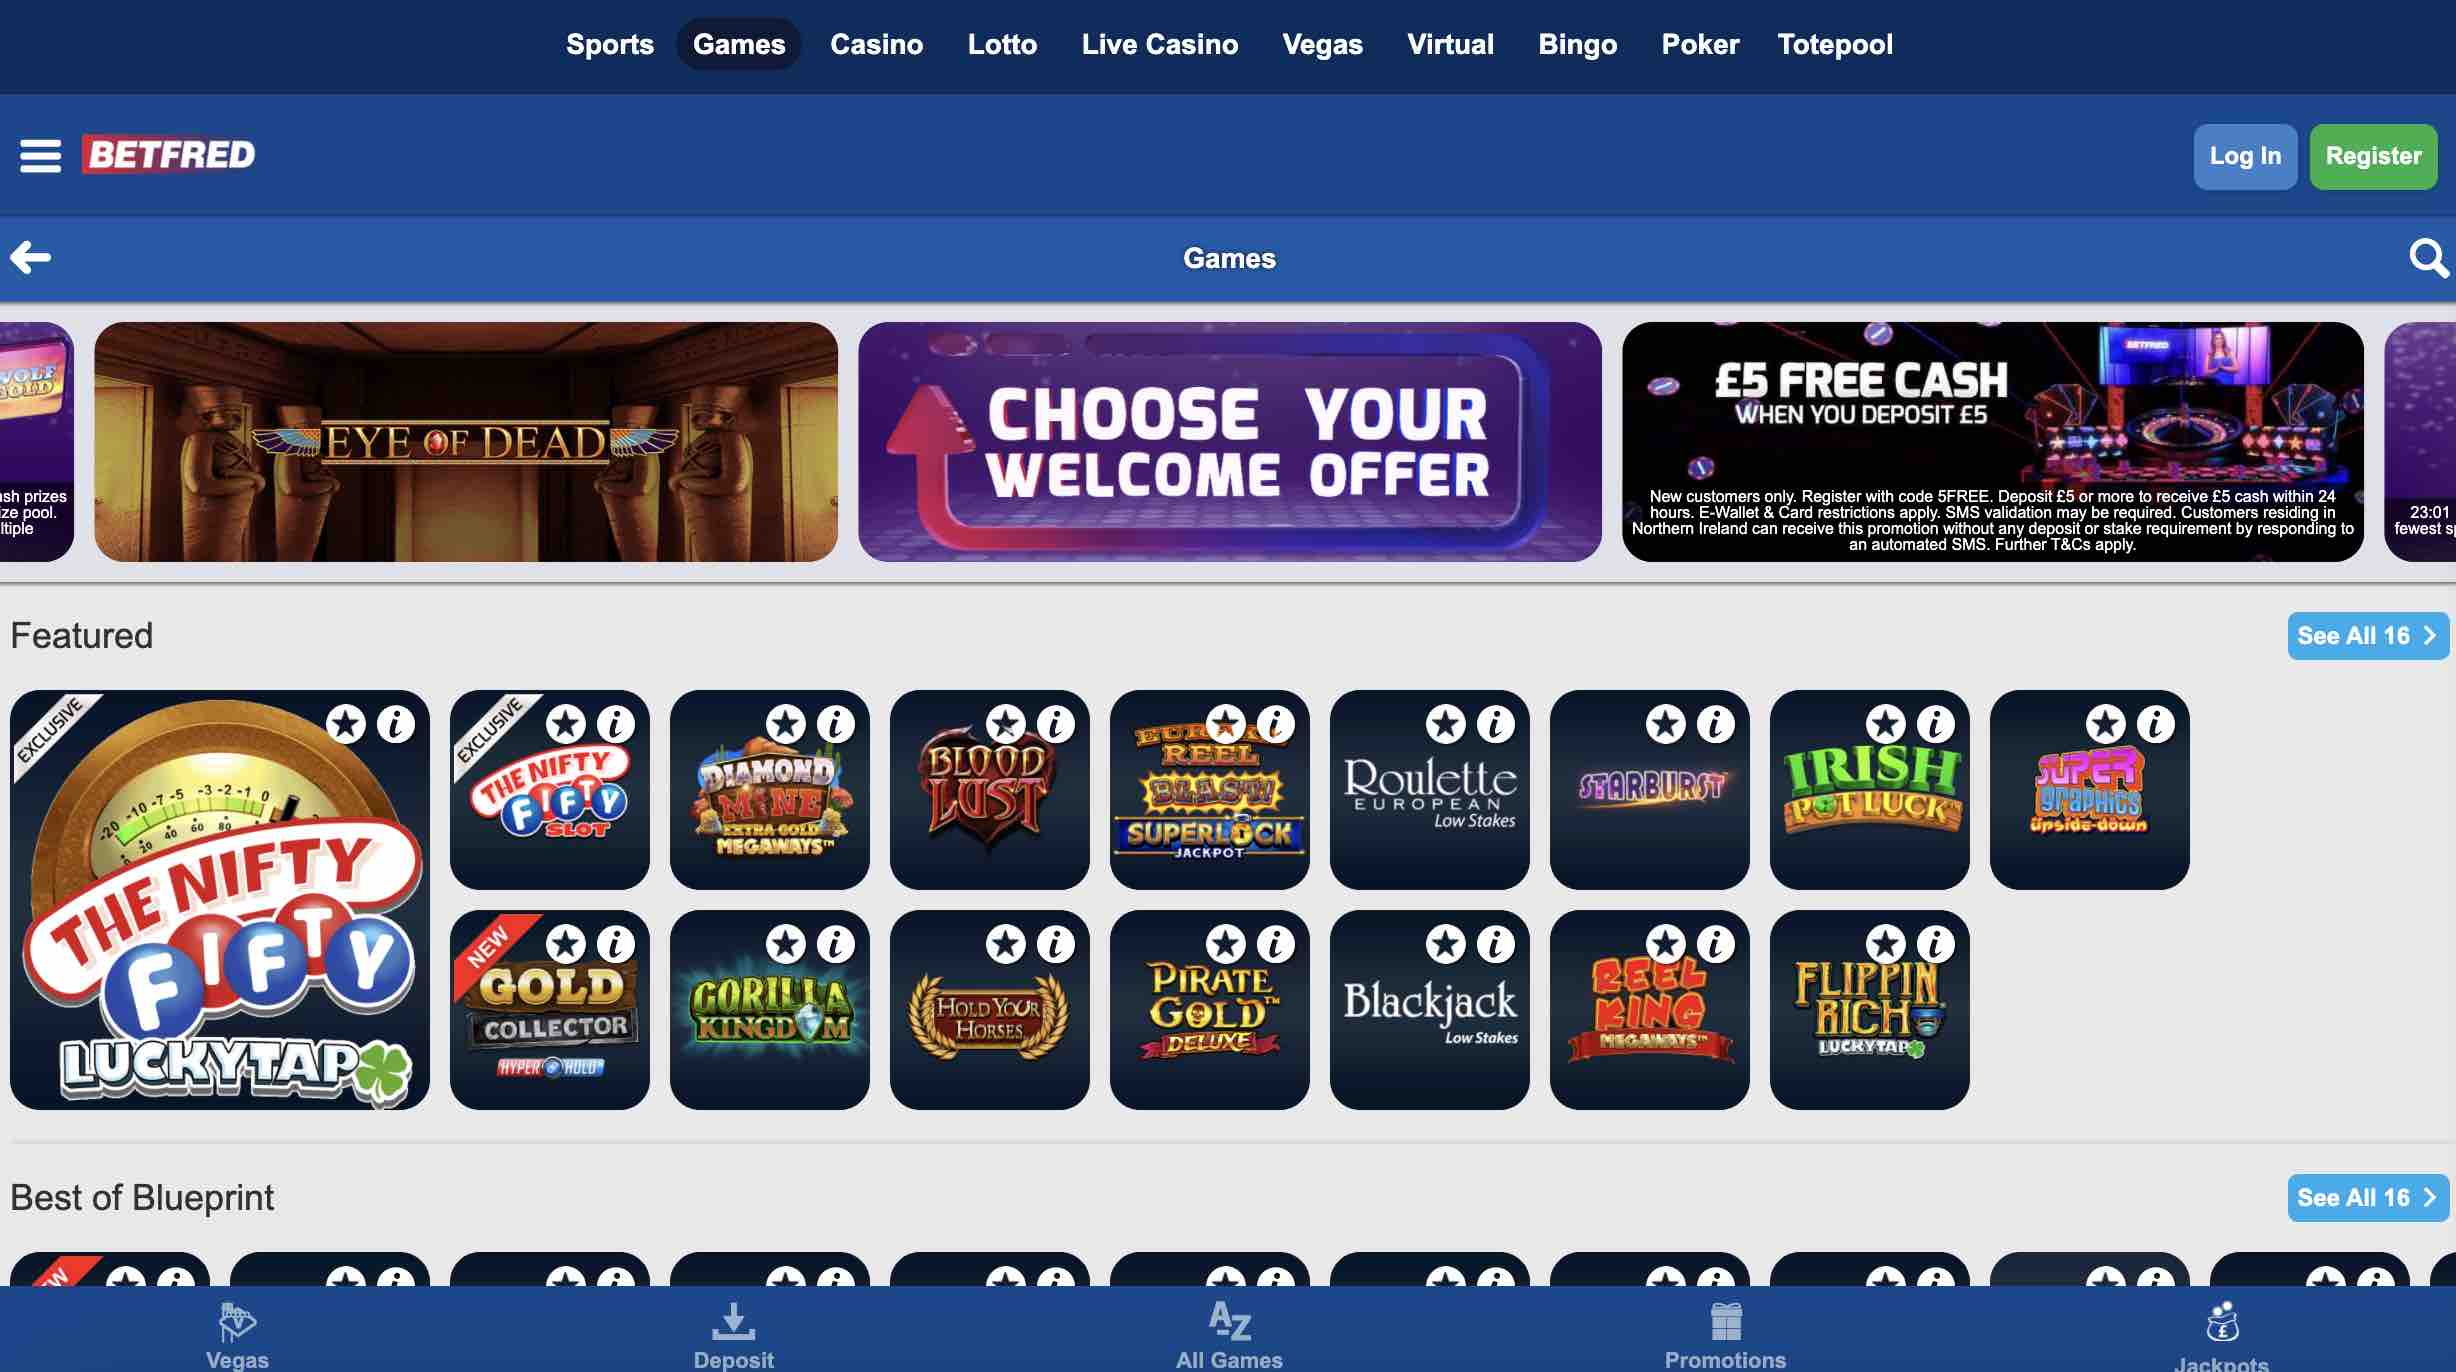 Betfred Casino Review and Promos